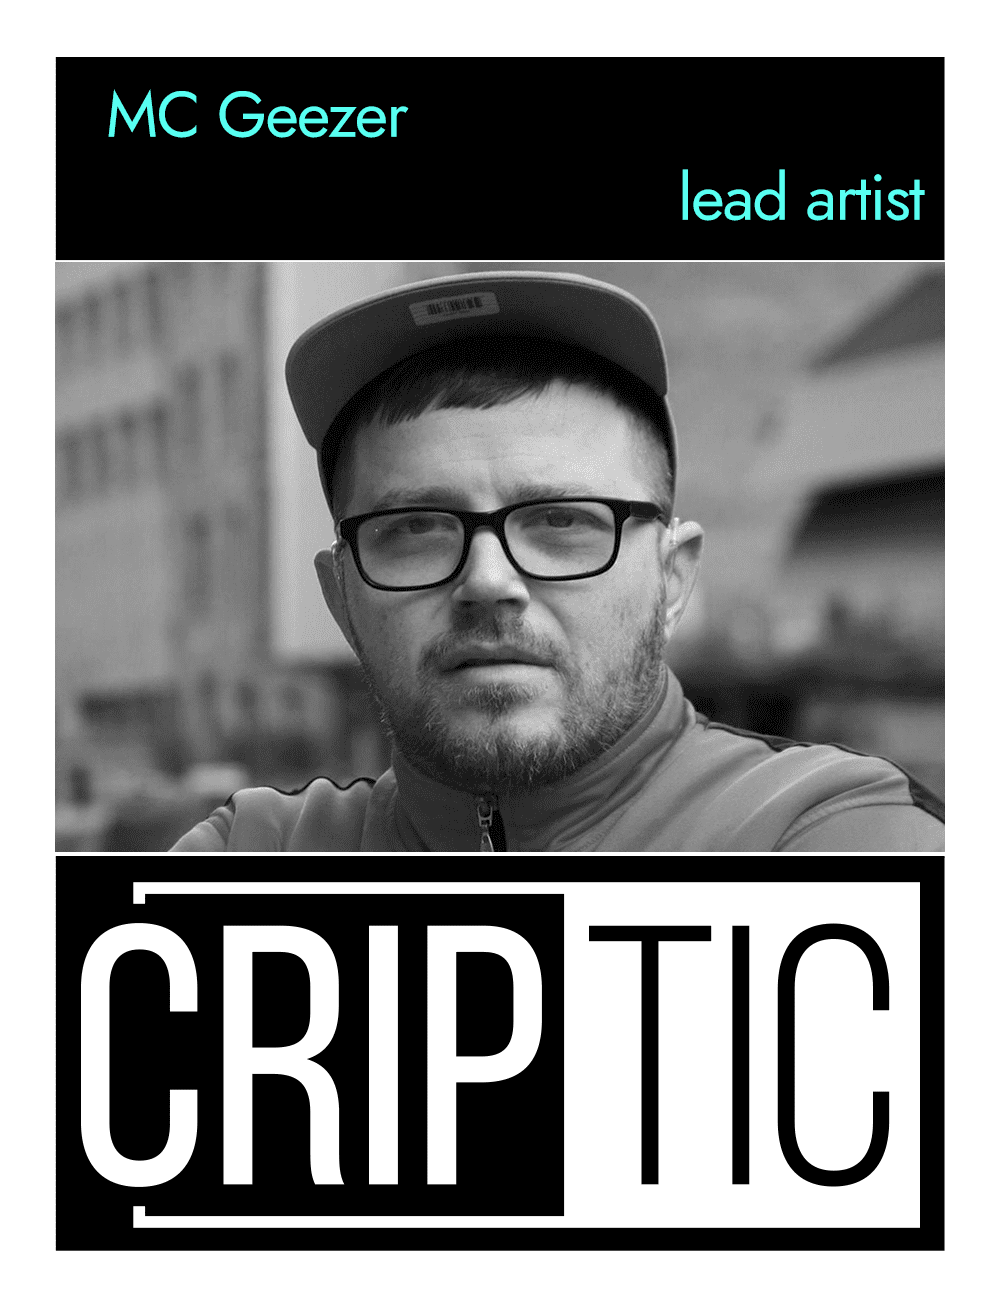 This is the back of an artist announcement card for MC Geezer. The design is styled on an American baseball card. The card has a thin white border. At the top of the card, there is a thick black band with the artist name, MC Geezer, and a description of their role in CRIPtic, as Lead Artist. Below this, there is a black and white portrait photograph of XXX. MC Geezer is a white man with short hair and a short beard. He is wearing black glasses and a red polo shirt, and is stood outside some buildings in Hackney. Below the photo, there is a large black and white logo which reads CRIPtic.